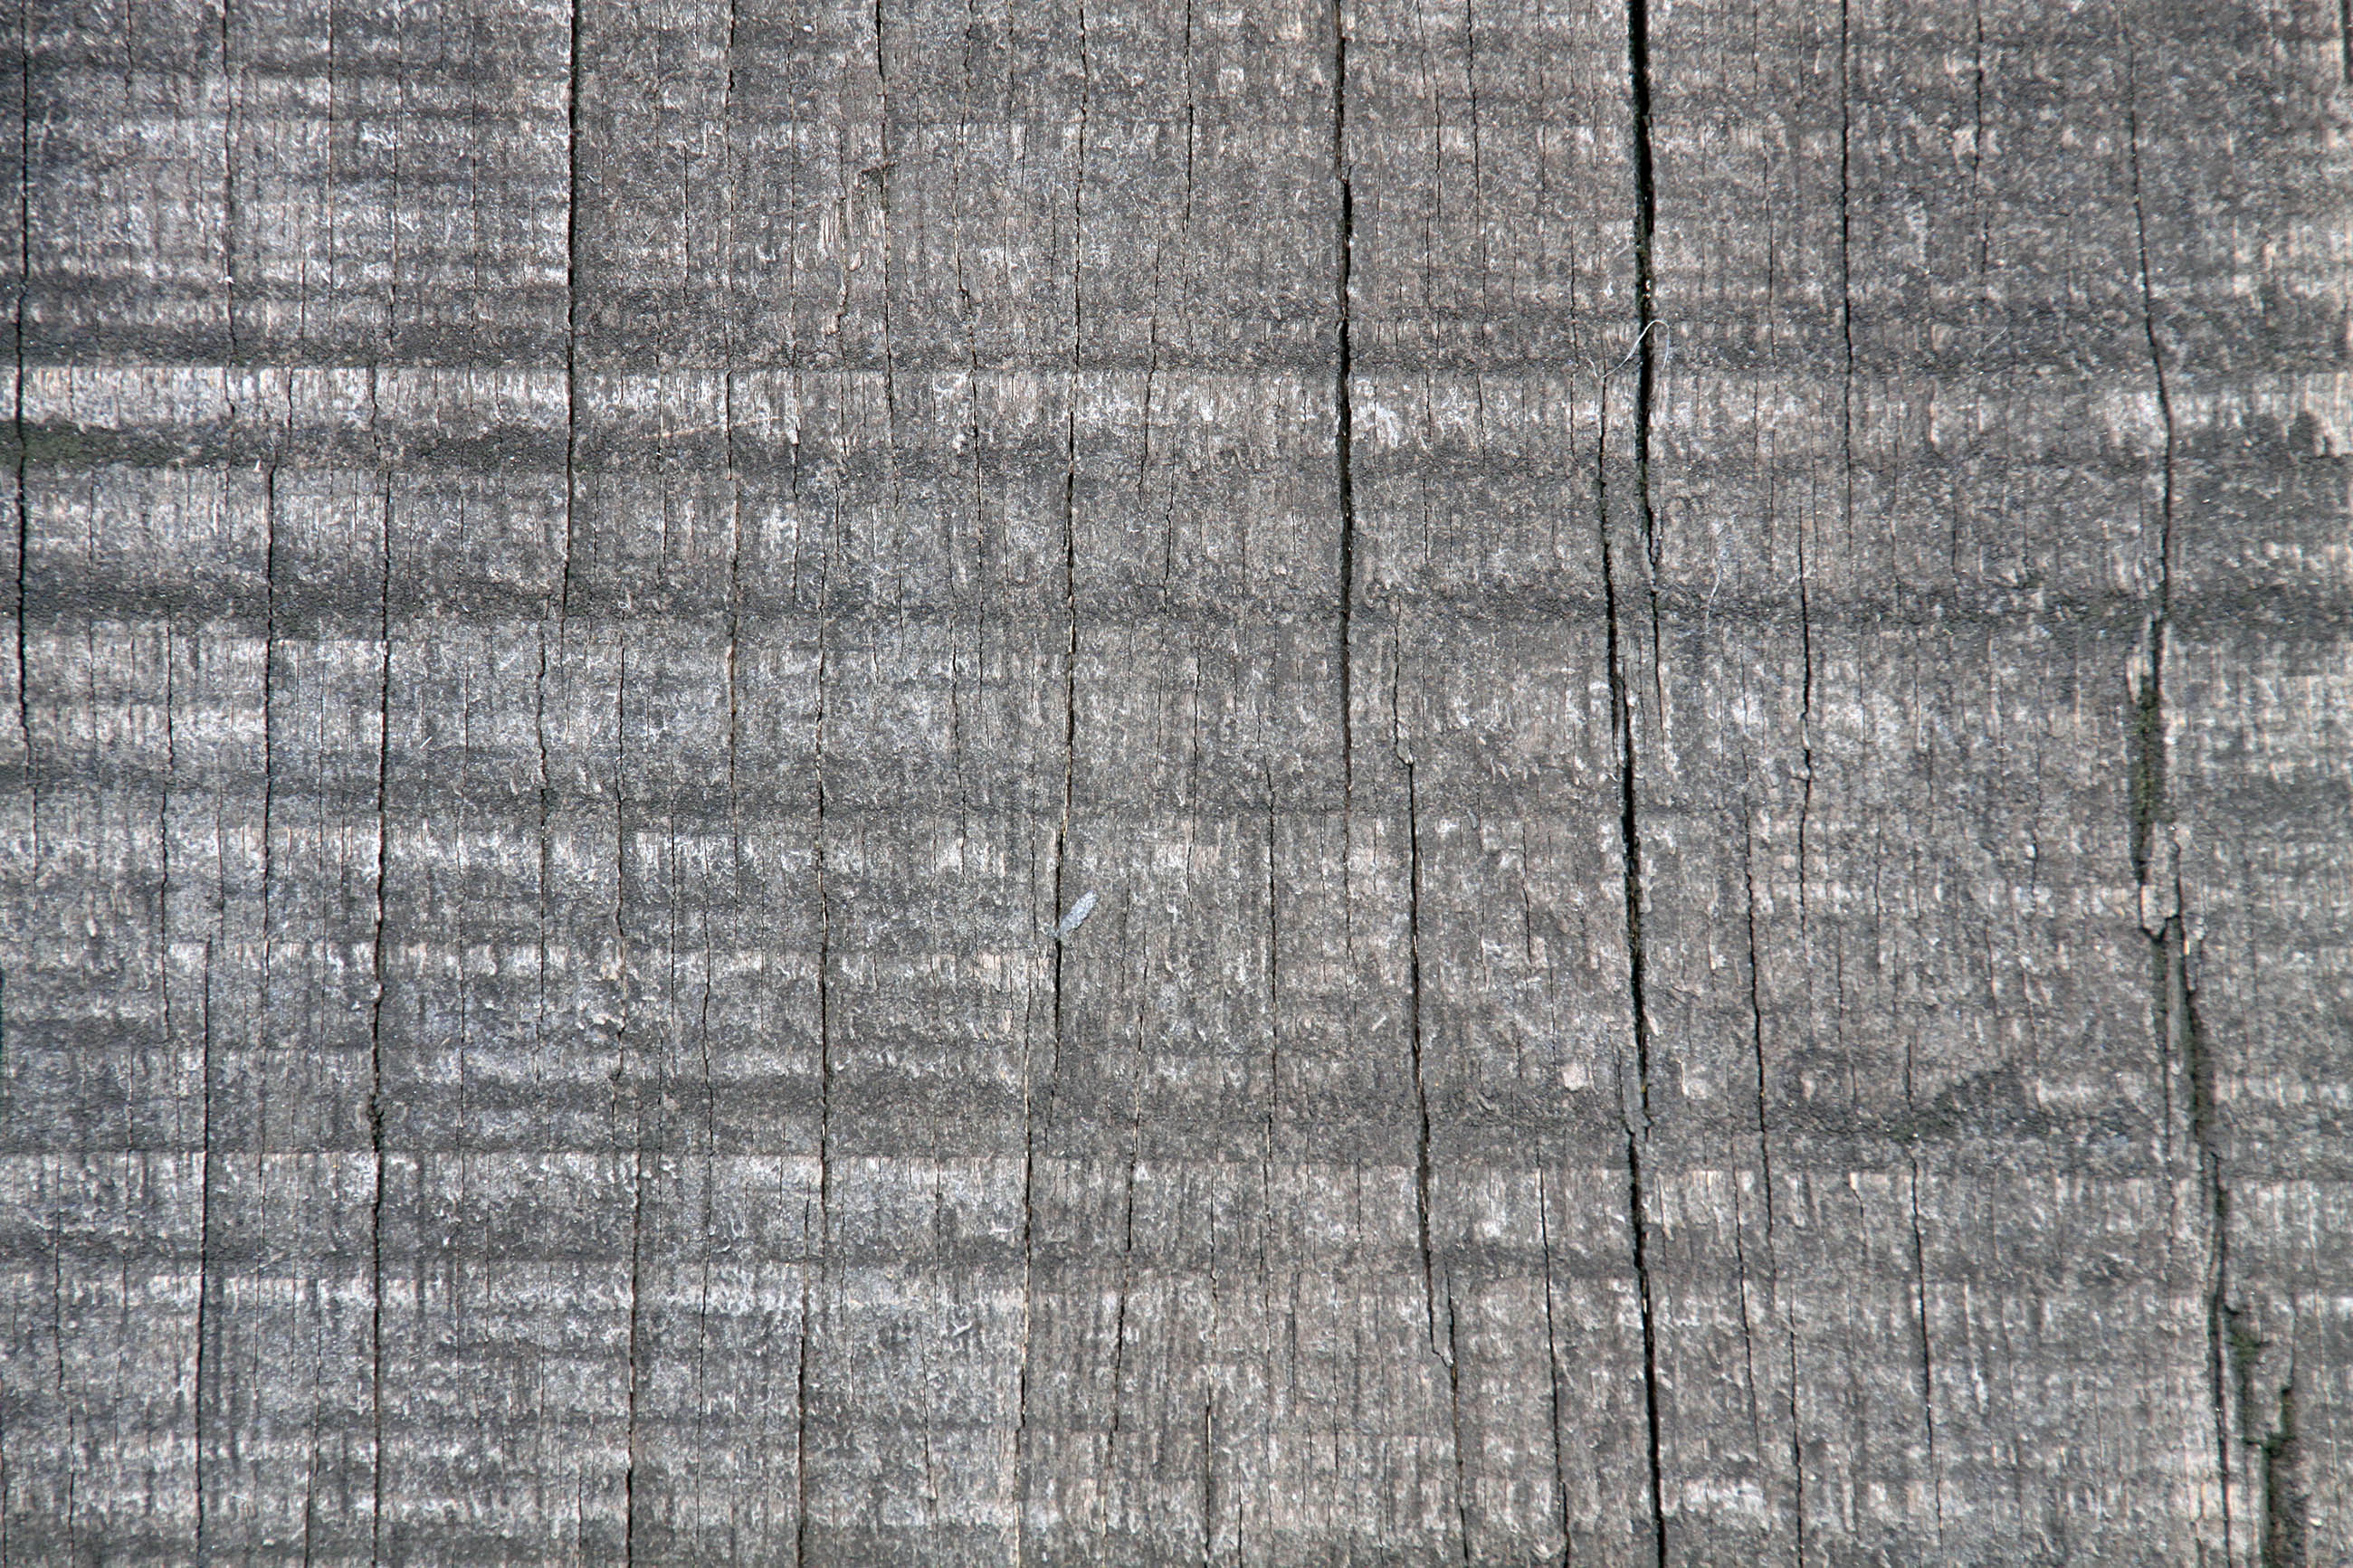 Old dry wood texture photo